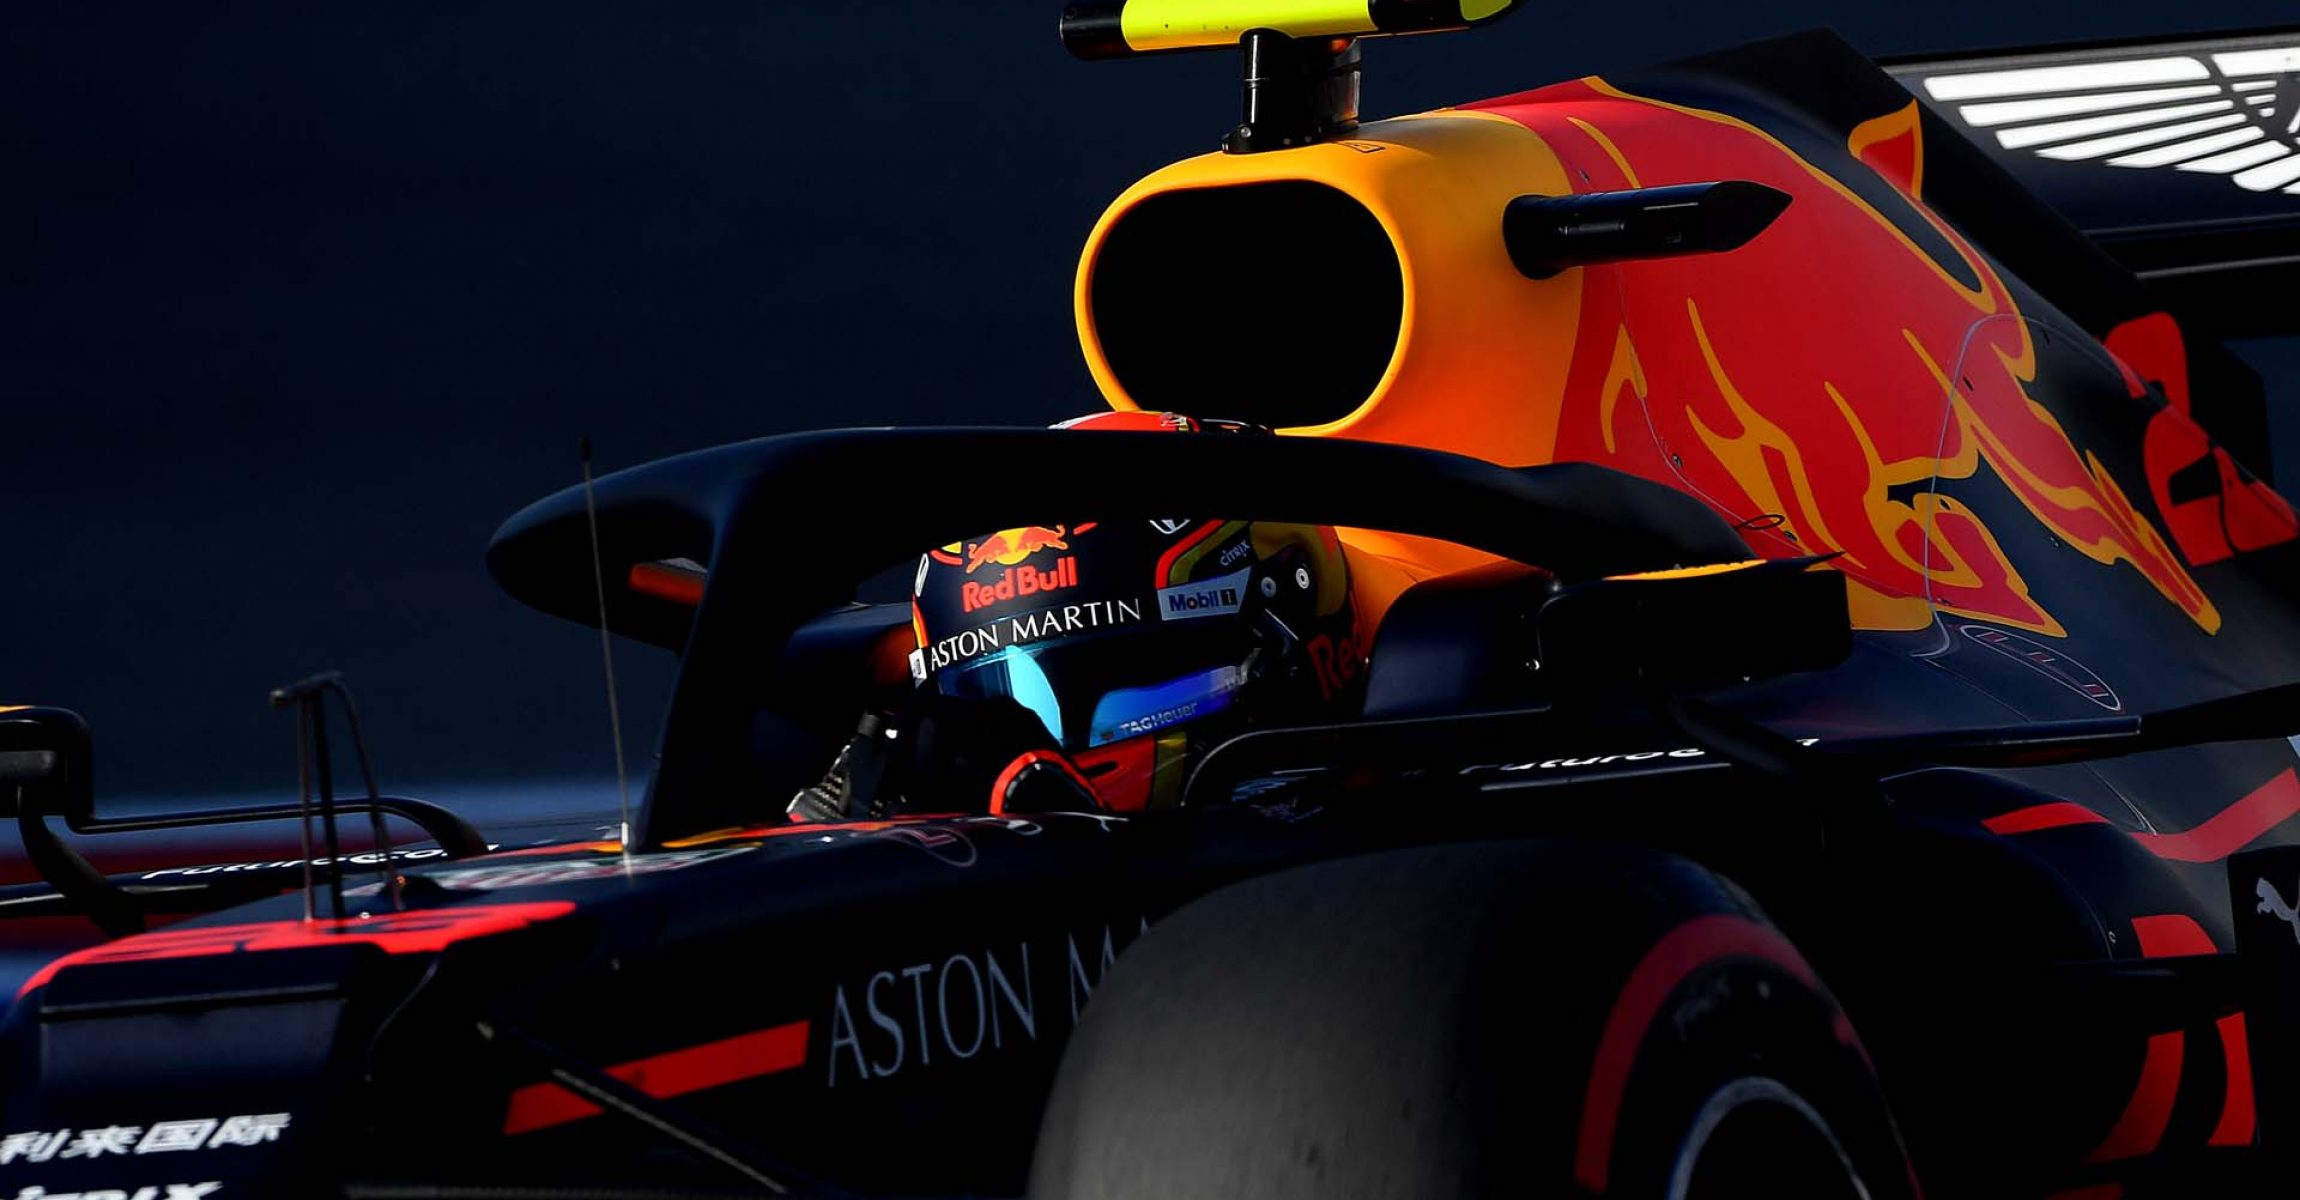 SOCHI, RUSSIA - SEPTEMBER 28: Alexander Albon of Thailand driving the (23) Aston Martin Red Bull Racing RB15 on track during qualifying for the F1 Grand Prix of Russia at Sochi Autodrom on September 28, 2019 in Sochi, Russia. (Photo by Clive Mason/Getty Images) // Getty Images / Red Bull Content Pool  // AP-21Q8BX88D1W11 // Usage for editorial use only //